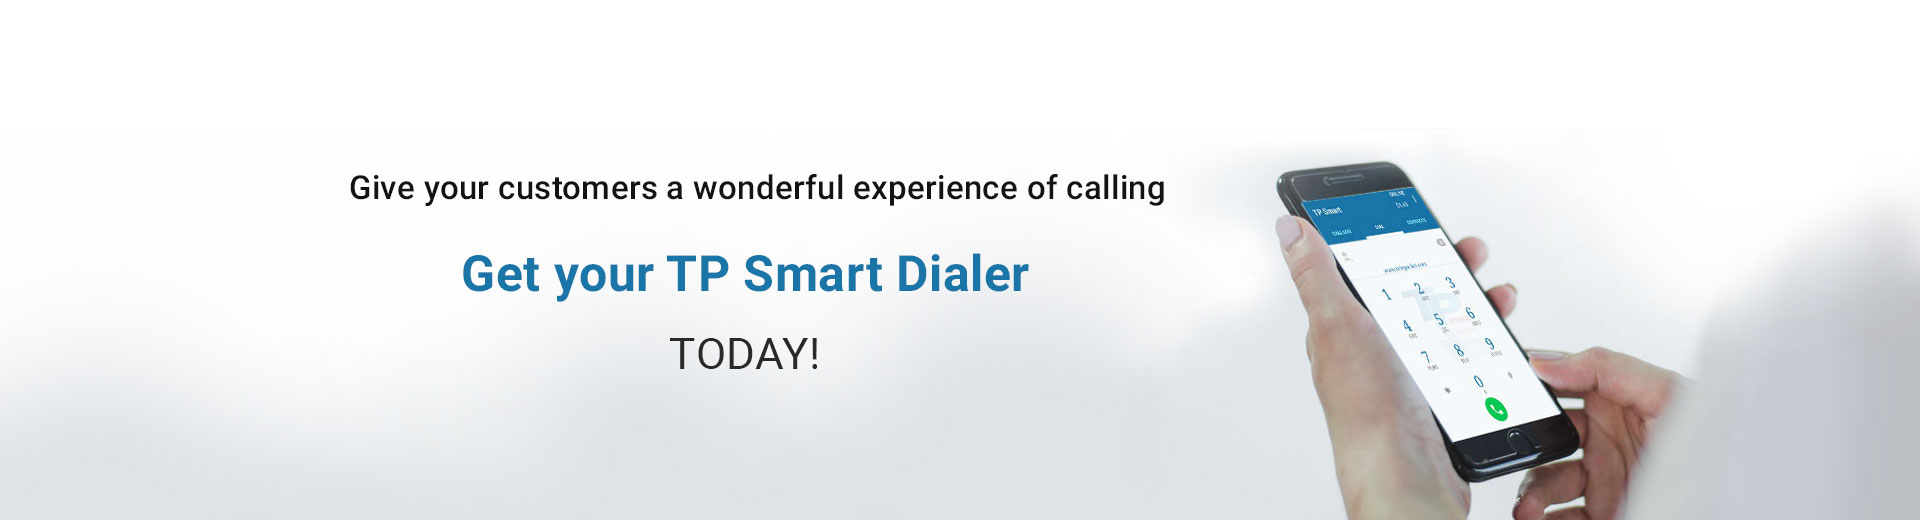 TP Smart Dialer for your VoIP Business-Telepacket